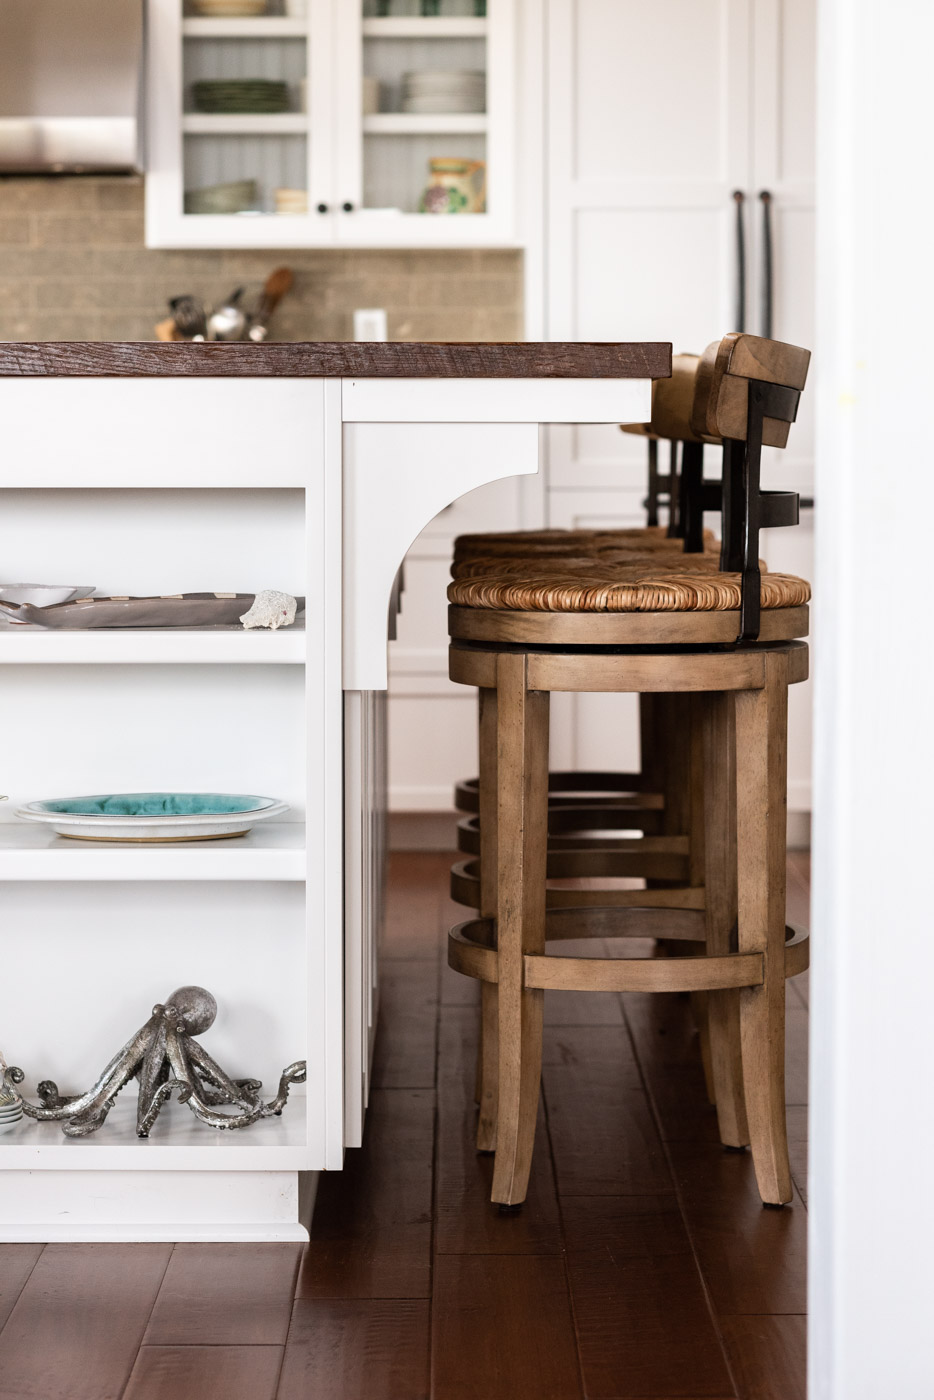 Coastal Craftsman kitchen with custom white painted shaker cabinets and island shelving